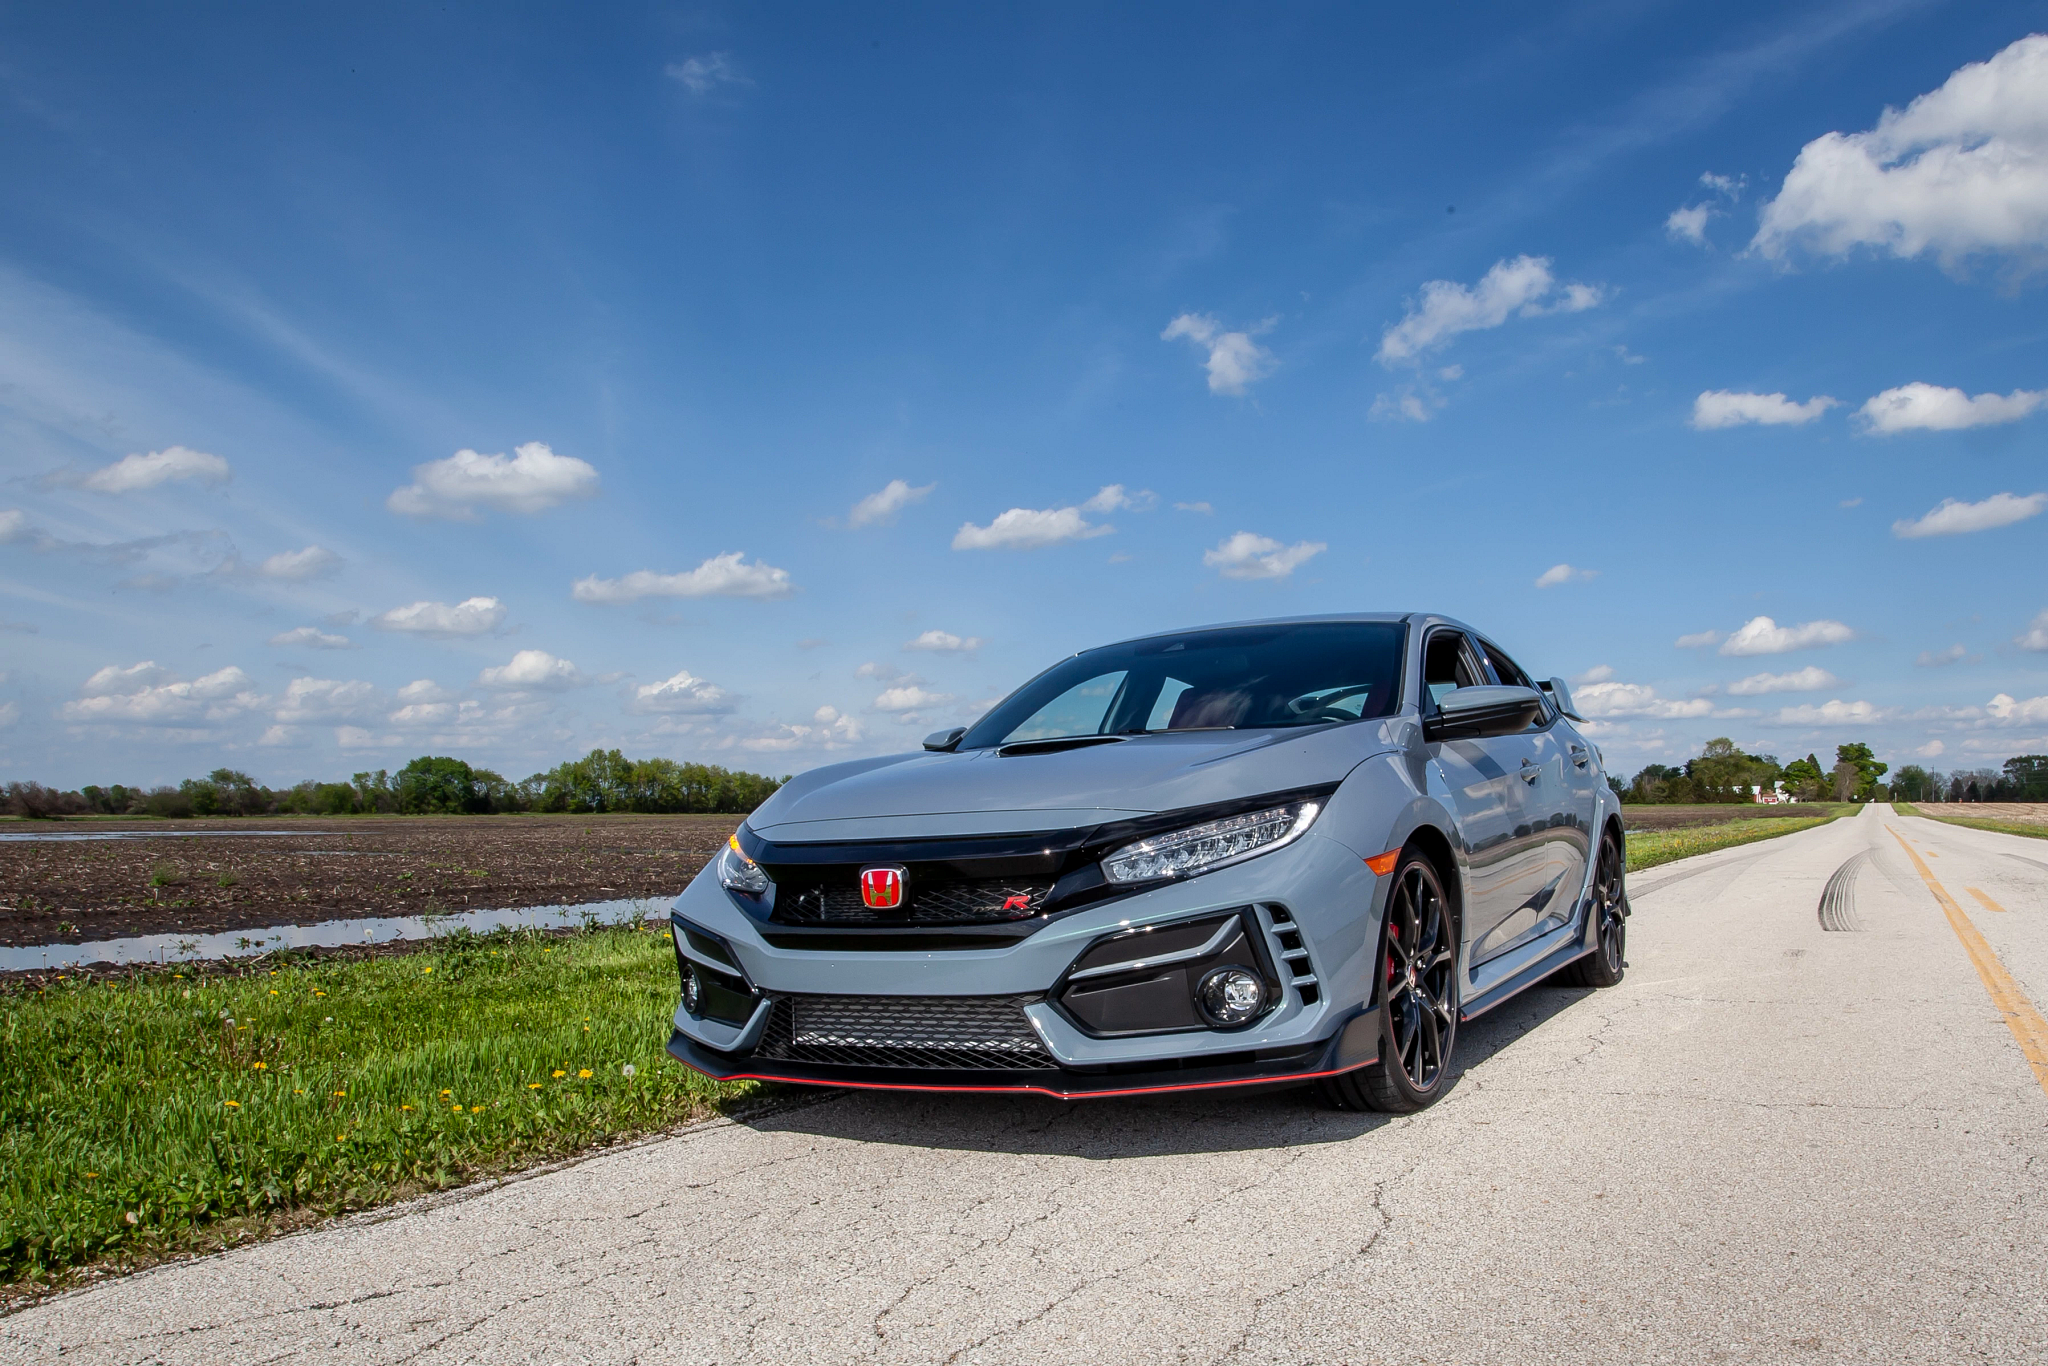 2020 Honda Civic Type R Review: Same Lovable Type R With One Caveat